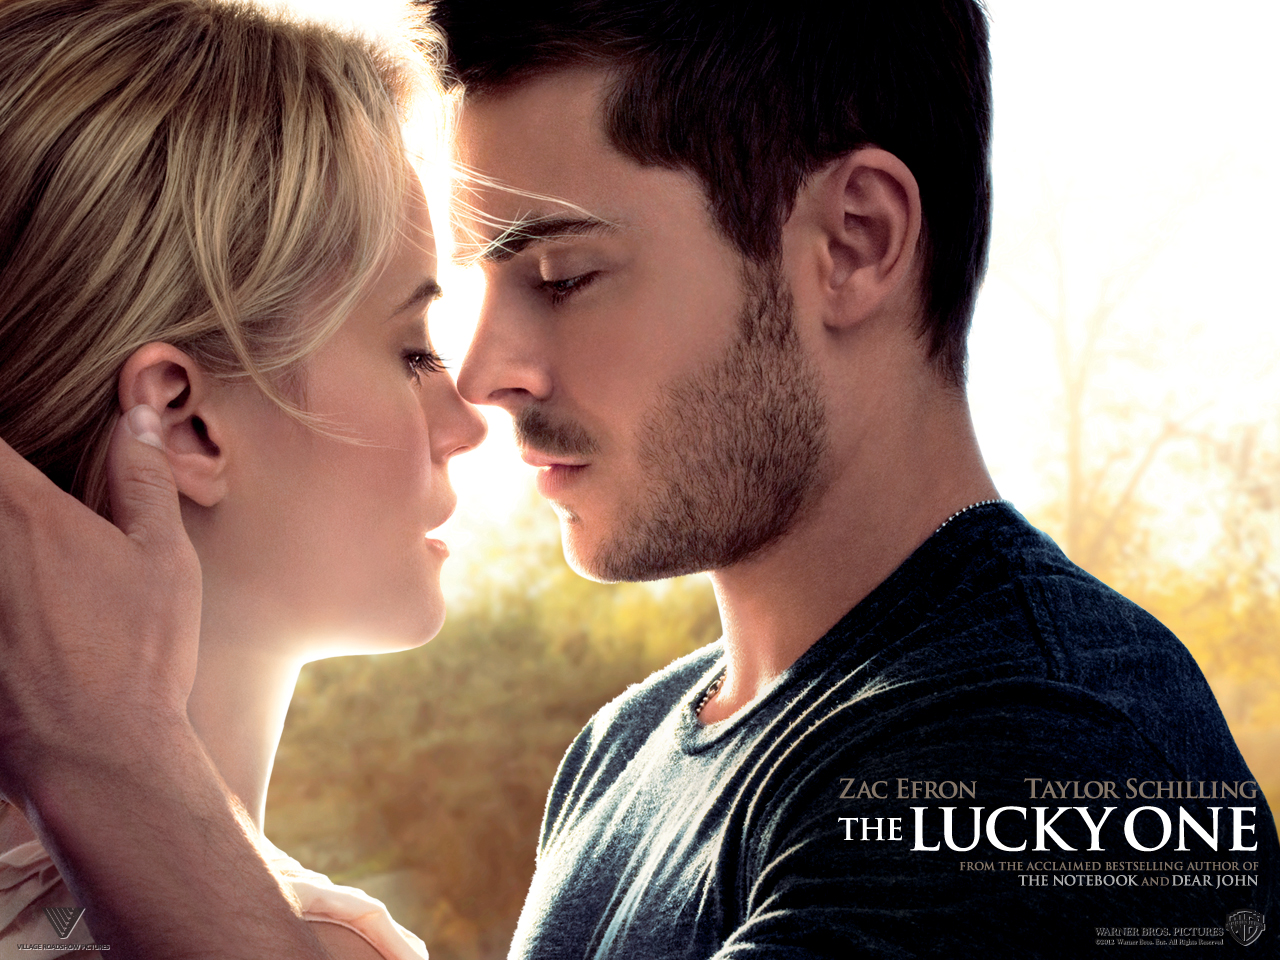 nicholas sparks the lucky one The lucky one has 293,425 ratings and 9,625 reviews kate said: damn, i really can't understand why i even started reading sparks in the first place thi.